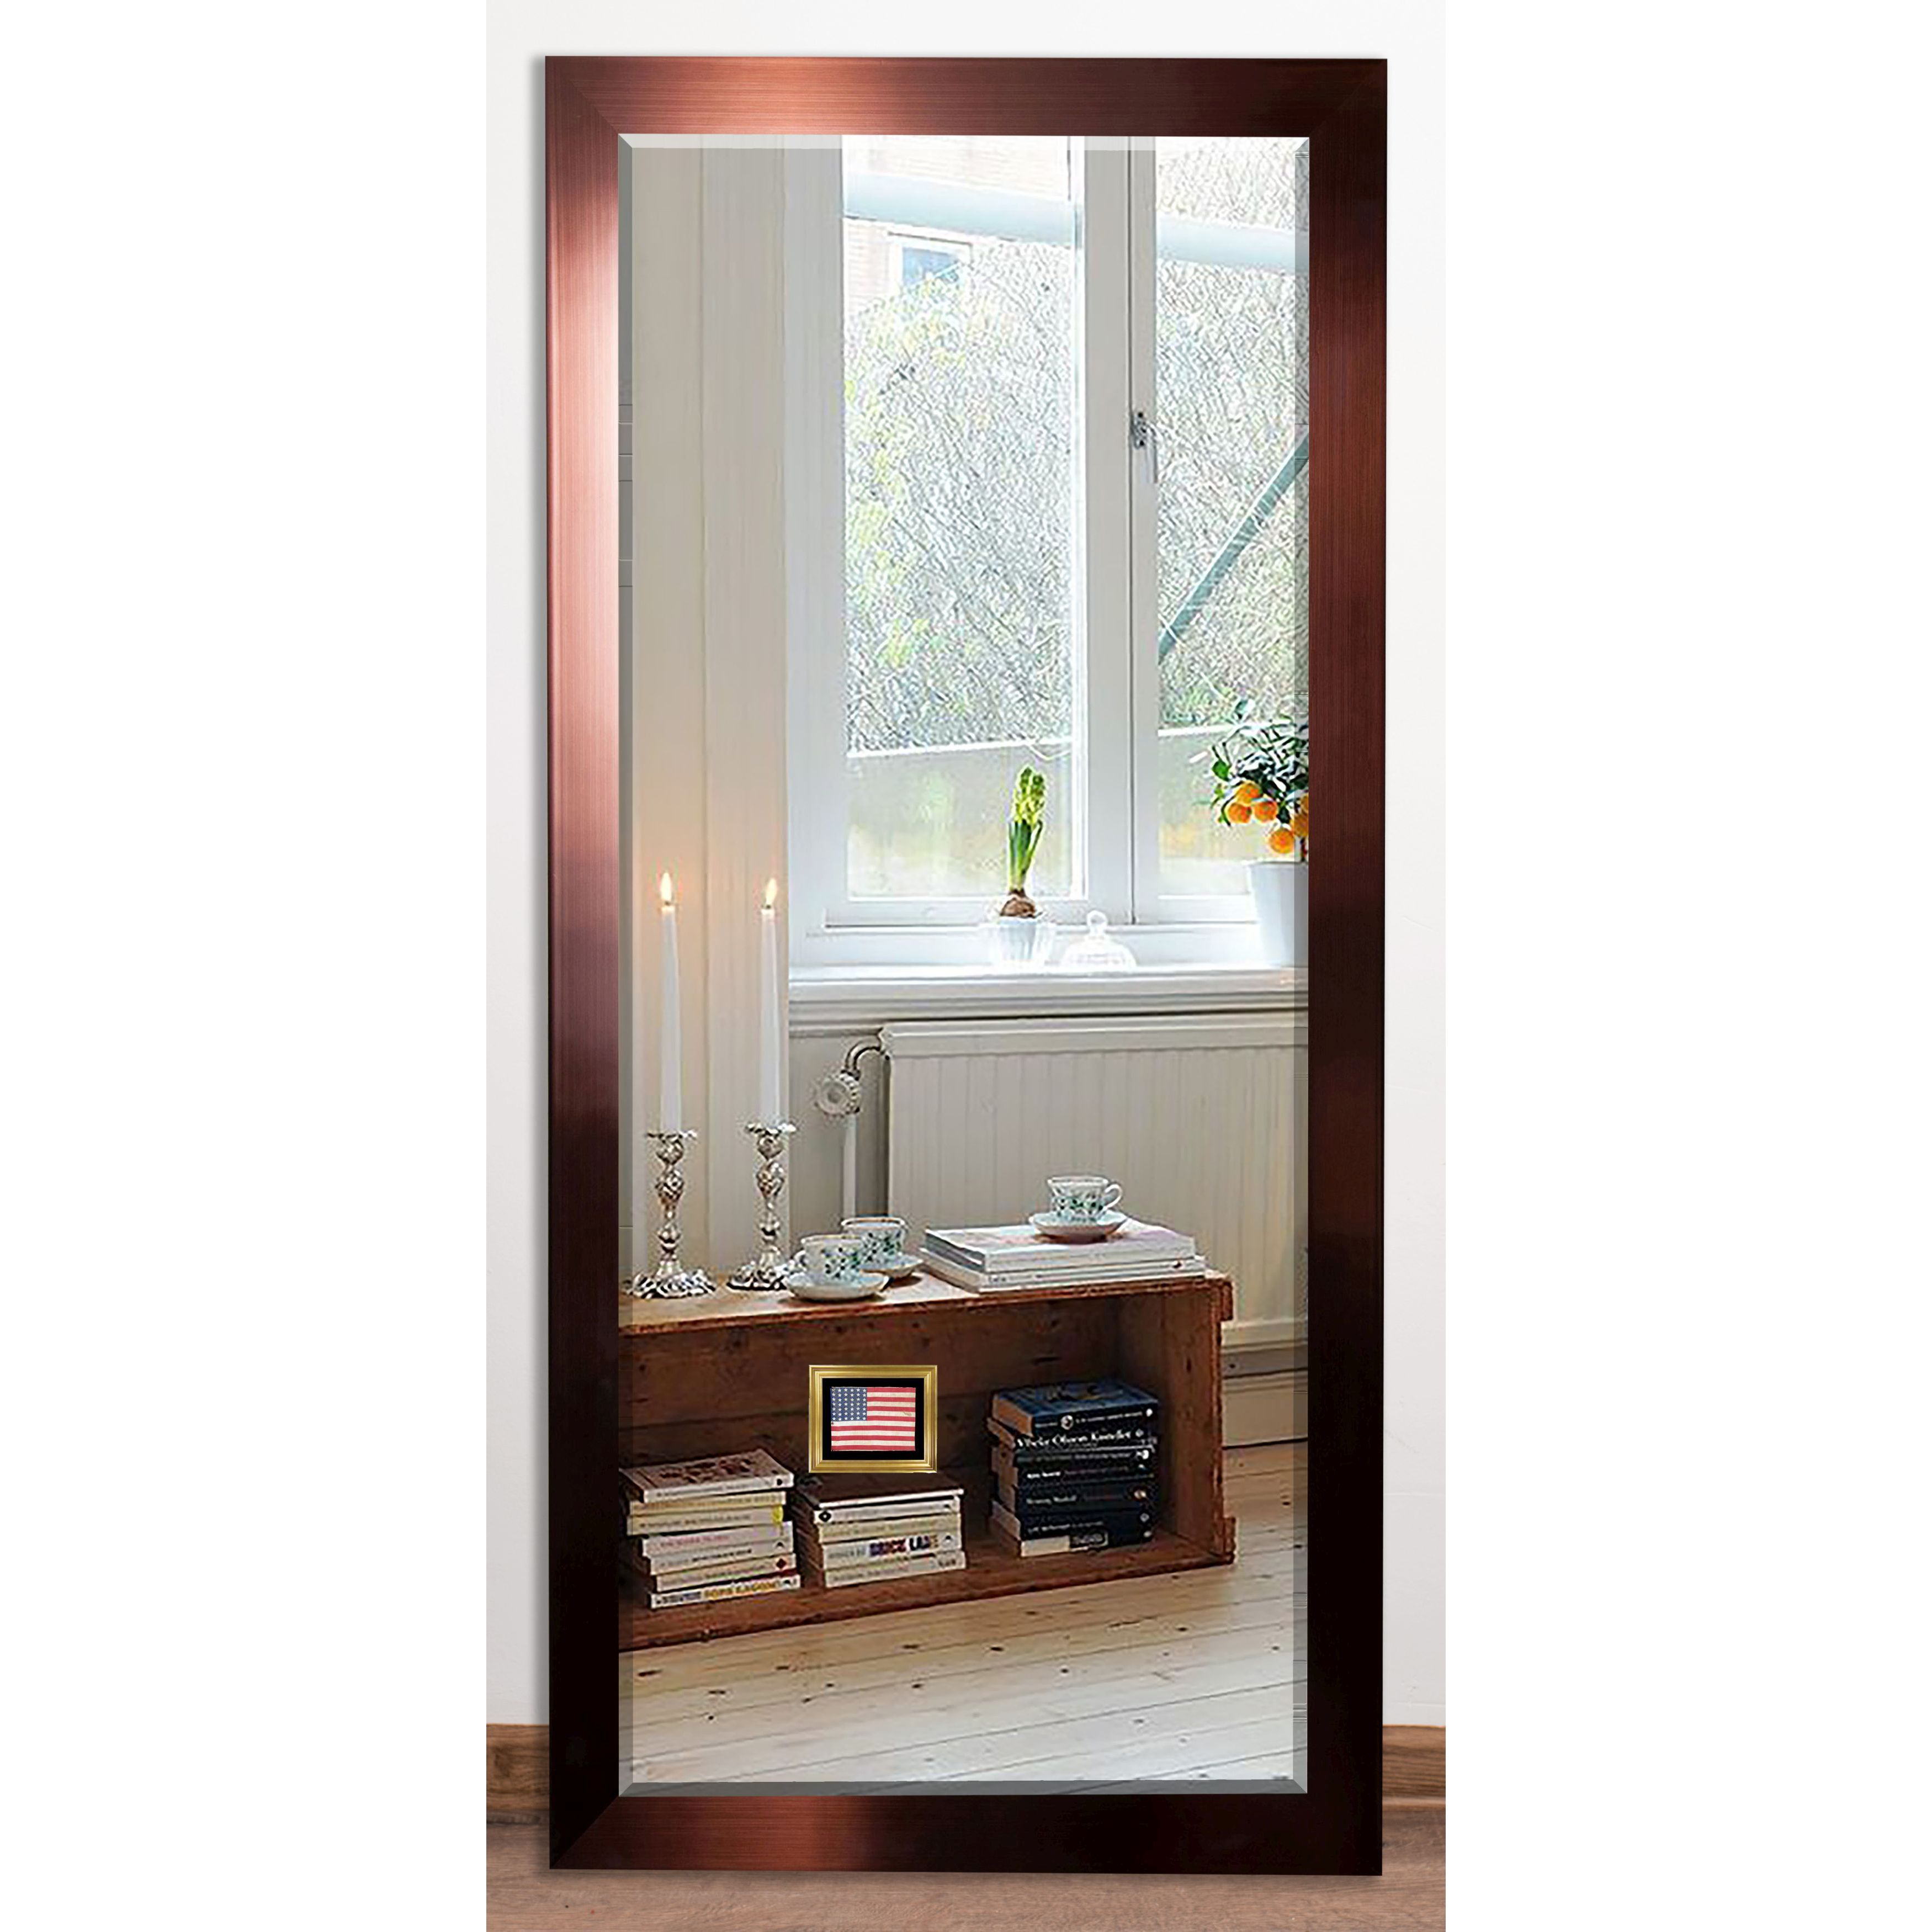 Shop us made shiny bronze beveled floor mirror copper free shipping today overstock com 14339819